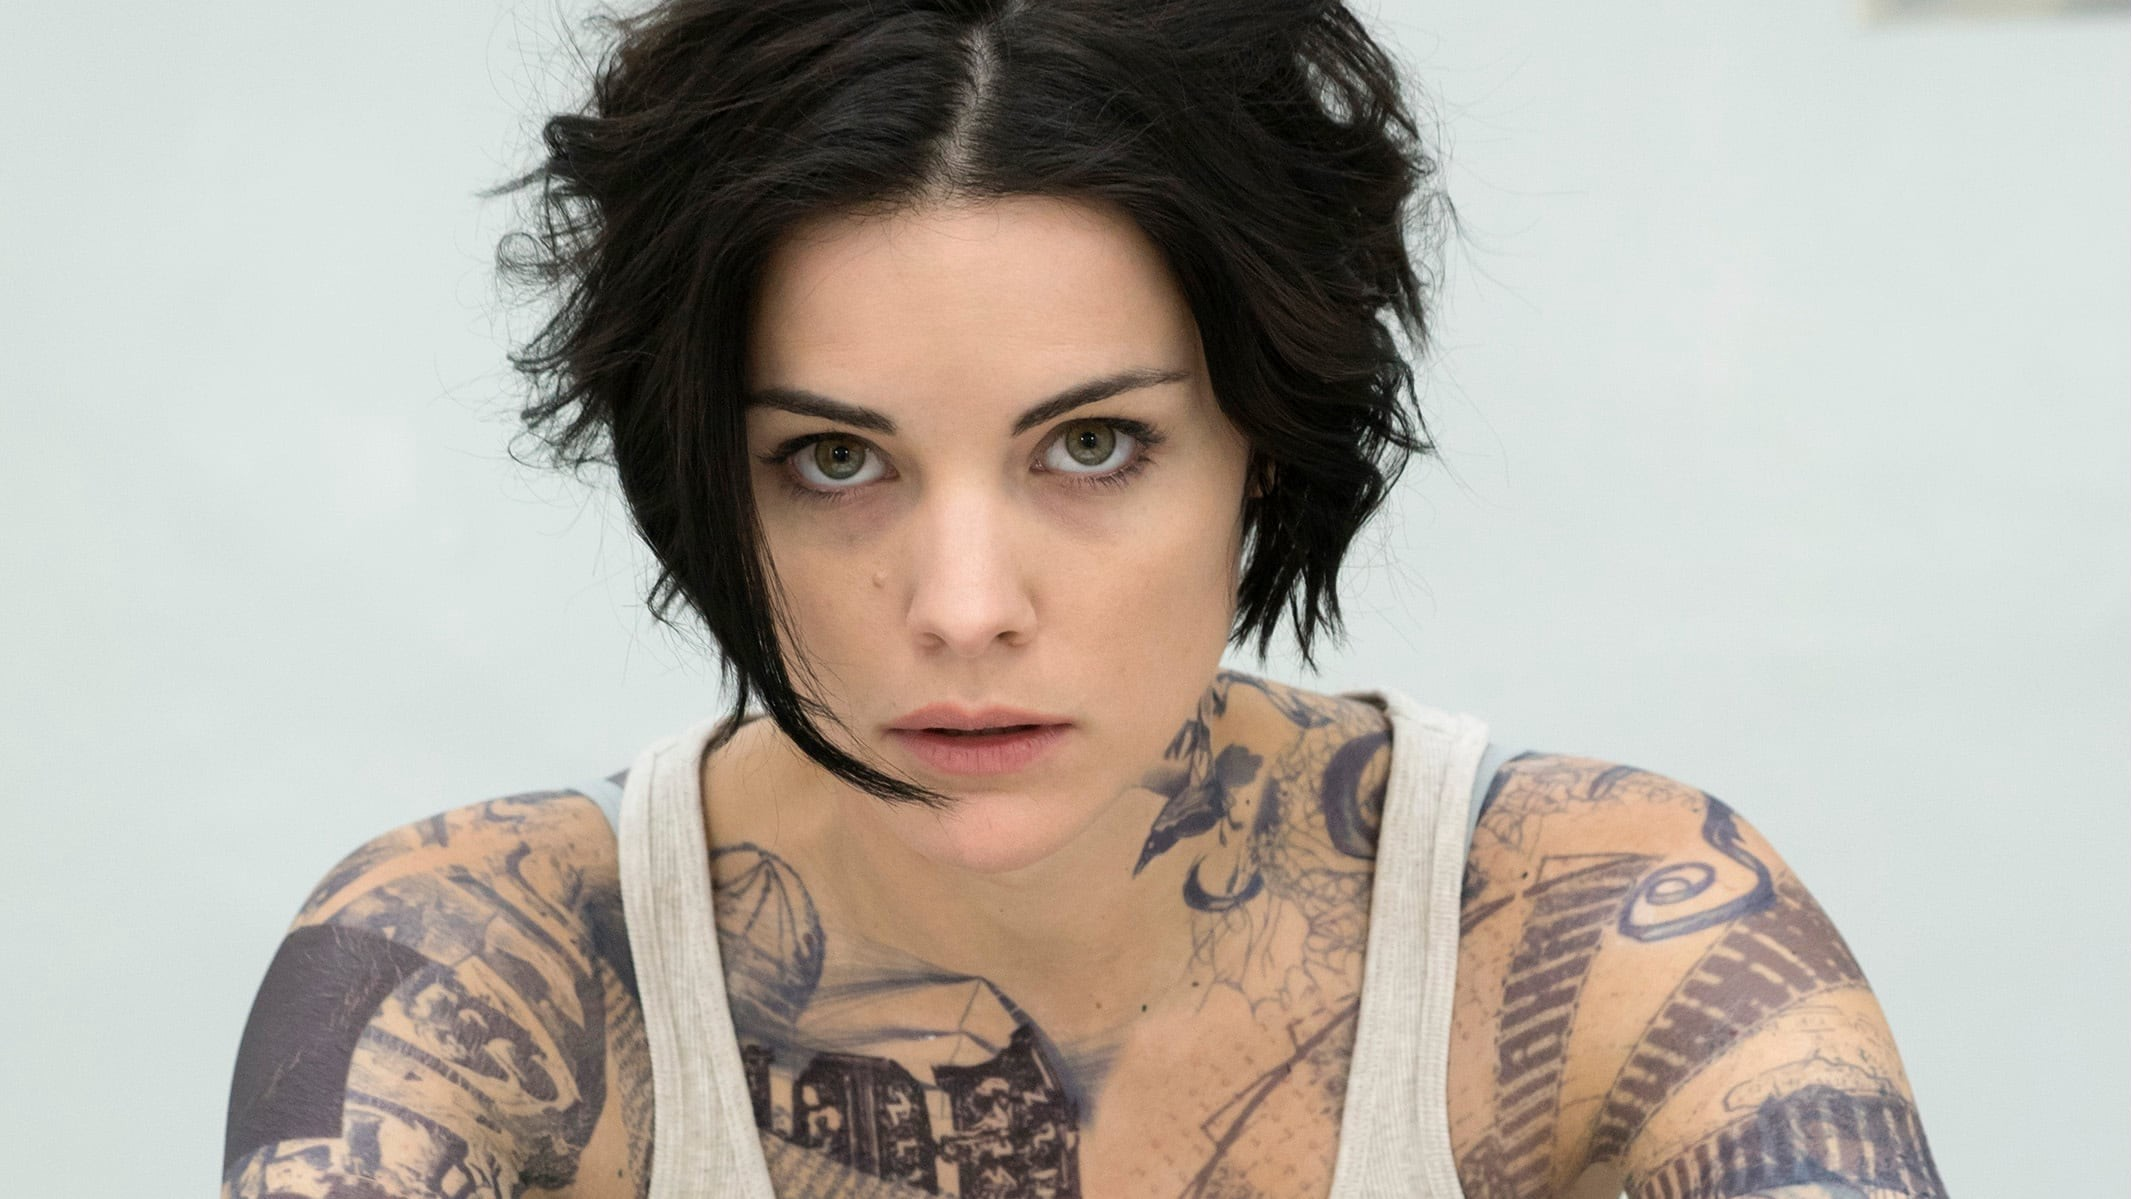 blindspot season 2 episode 7 watch online free